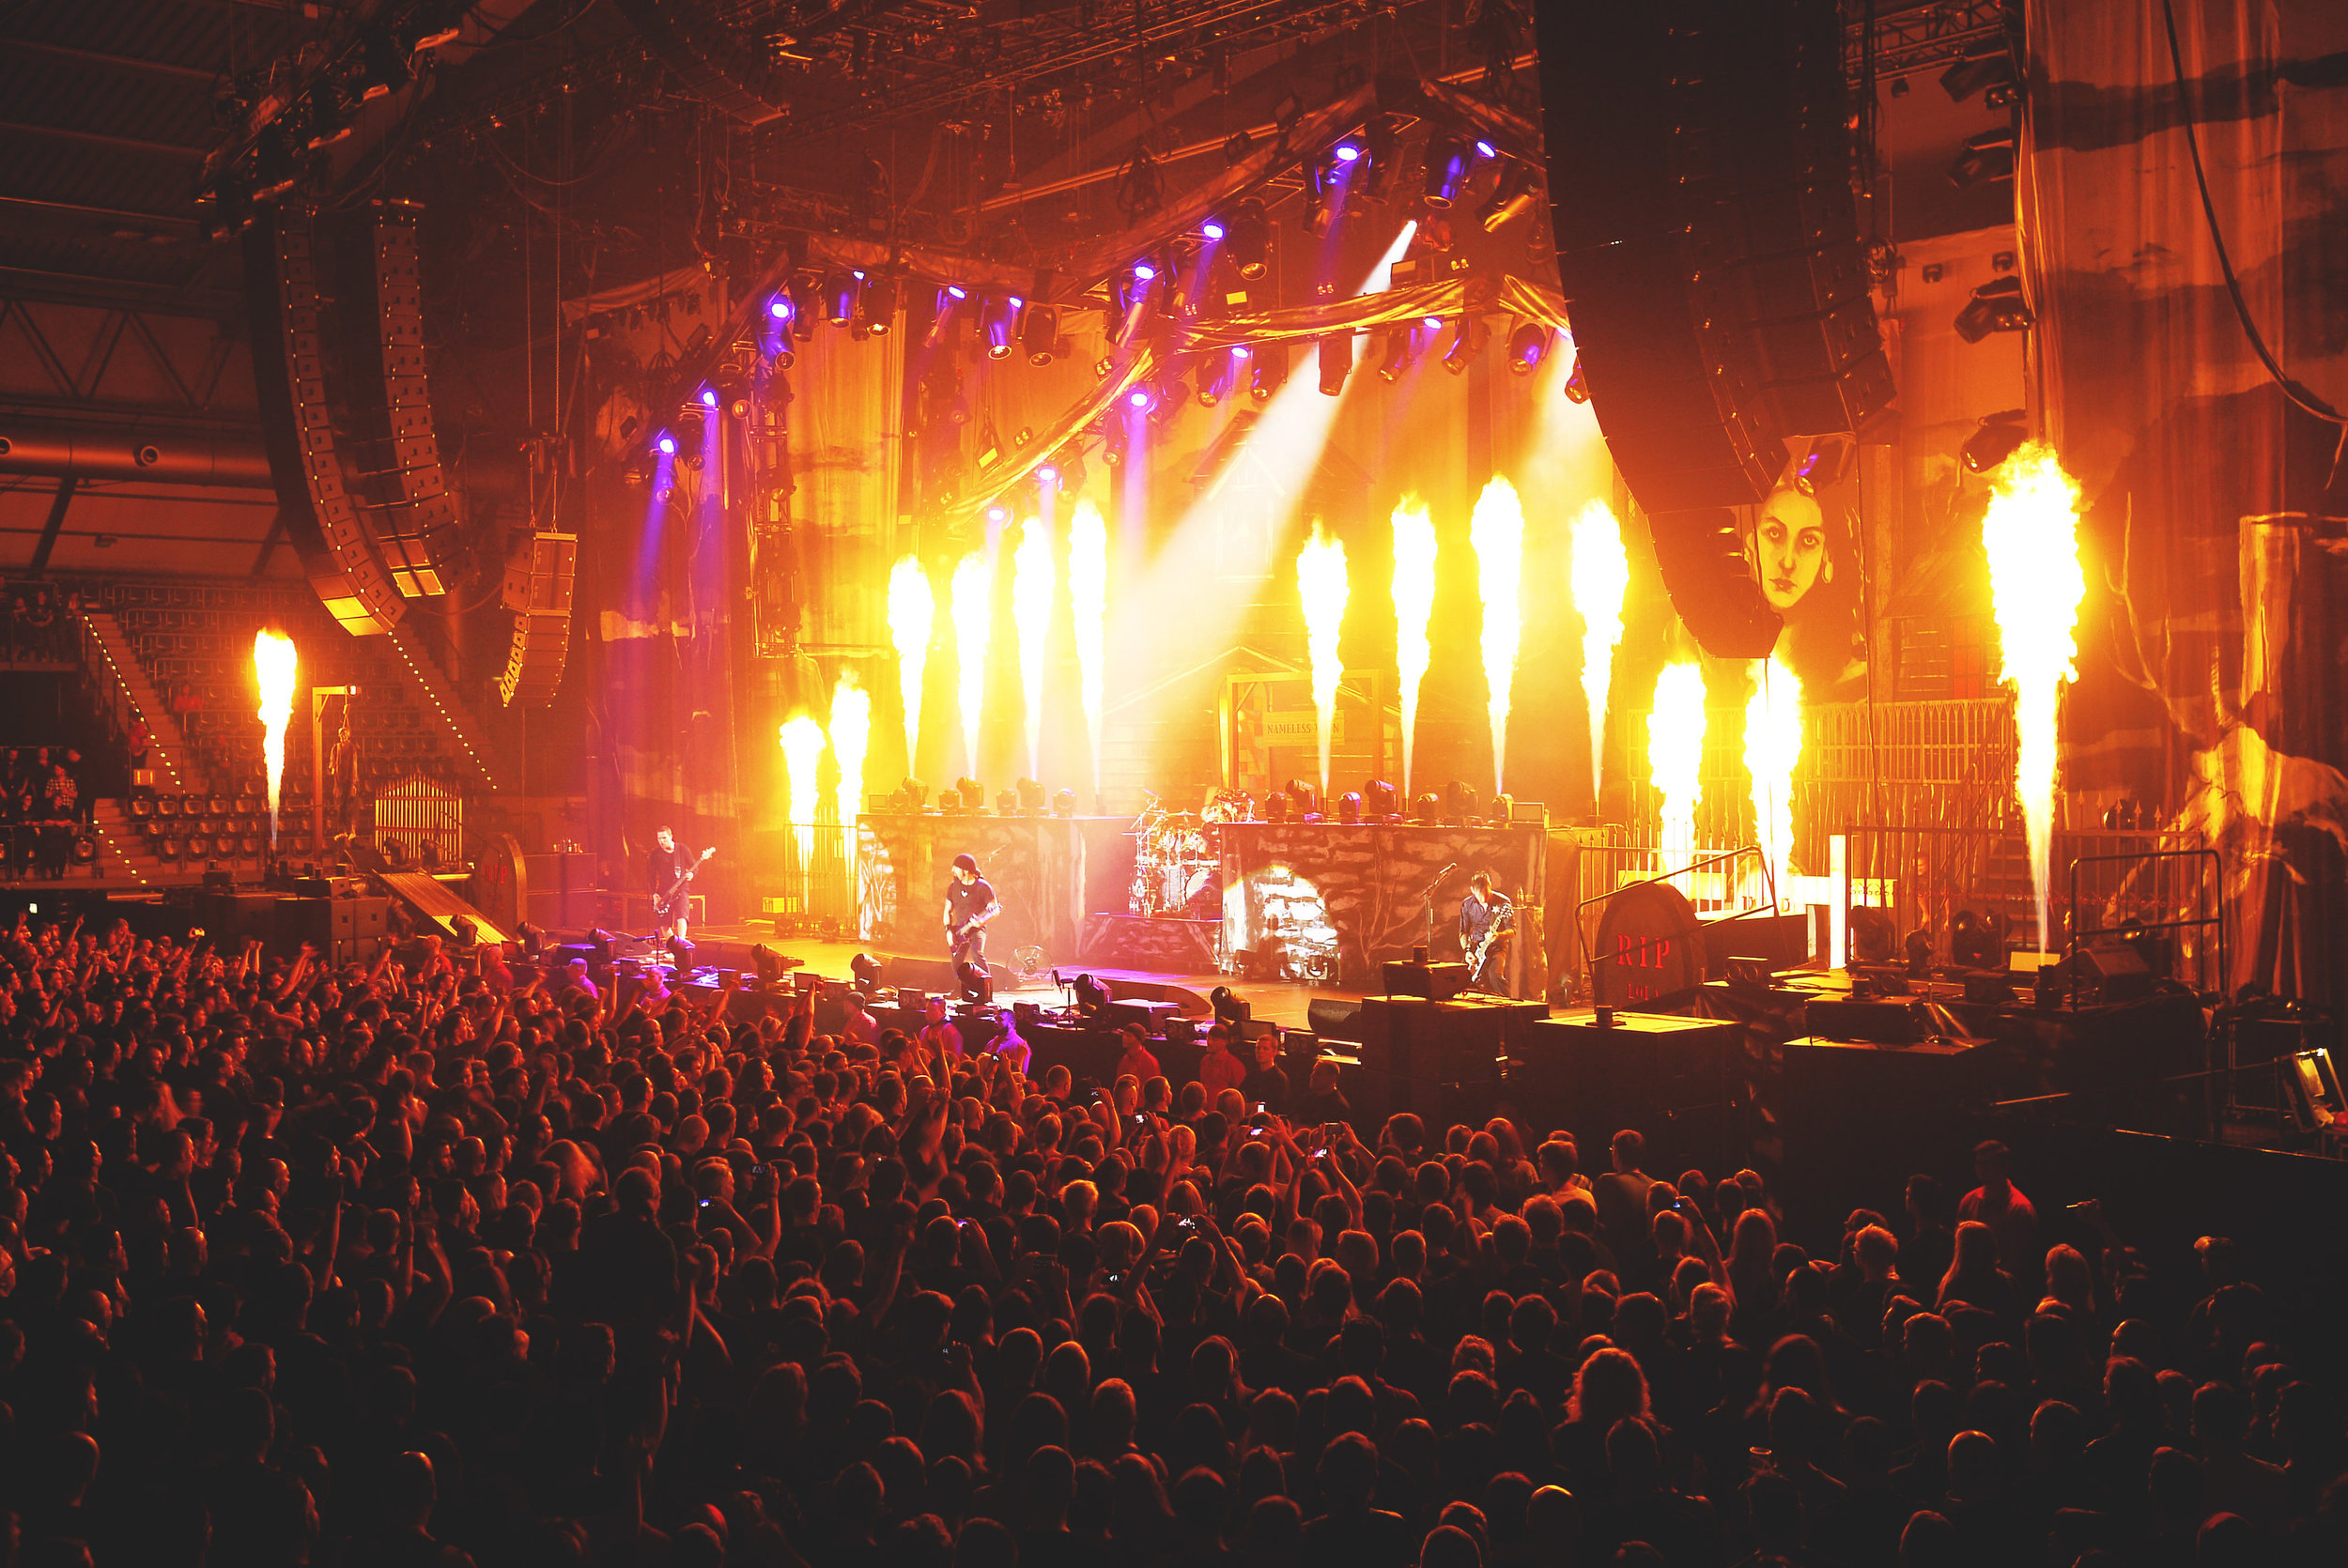 Touring Solutions - Volbeat European Arena Tour 2013 - Stage Pyro Flames.JPG